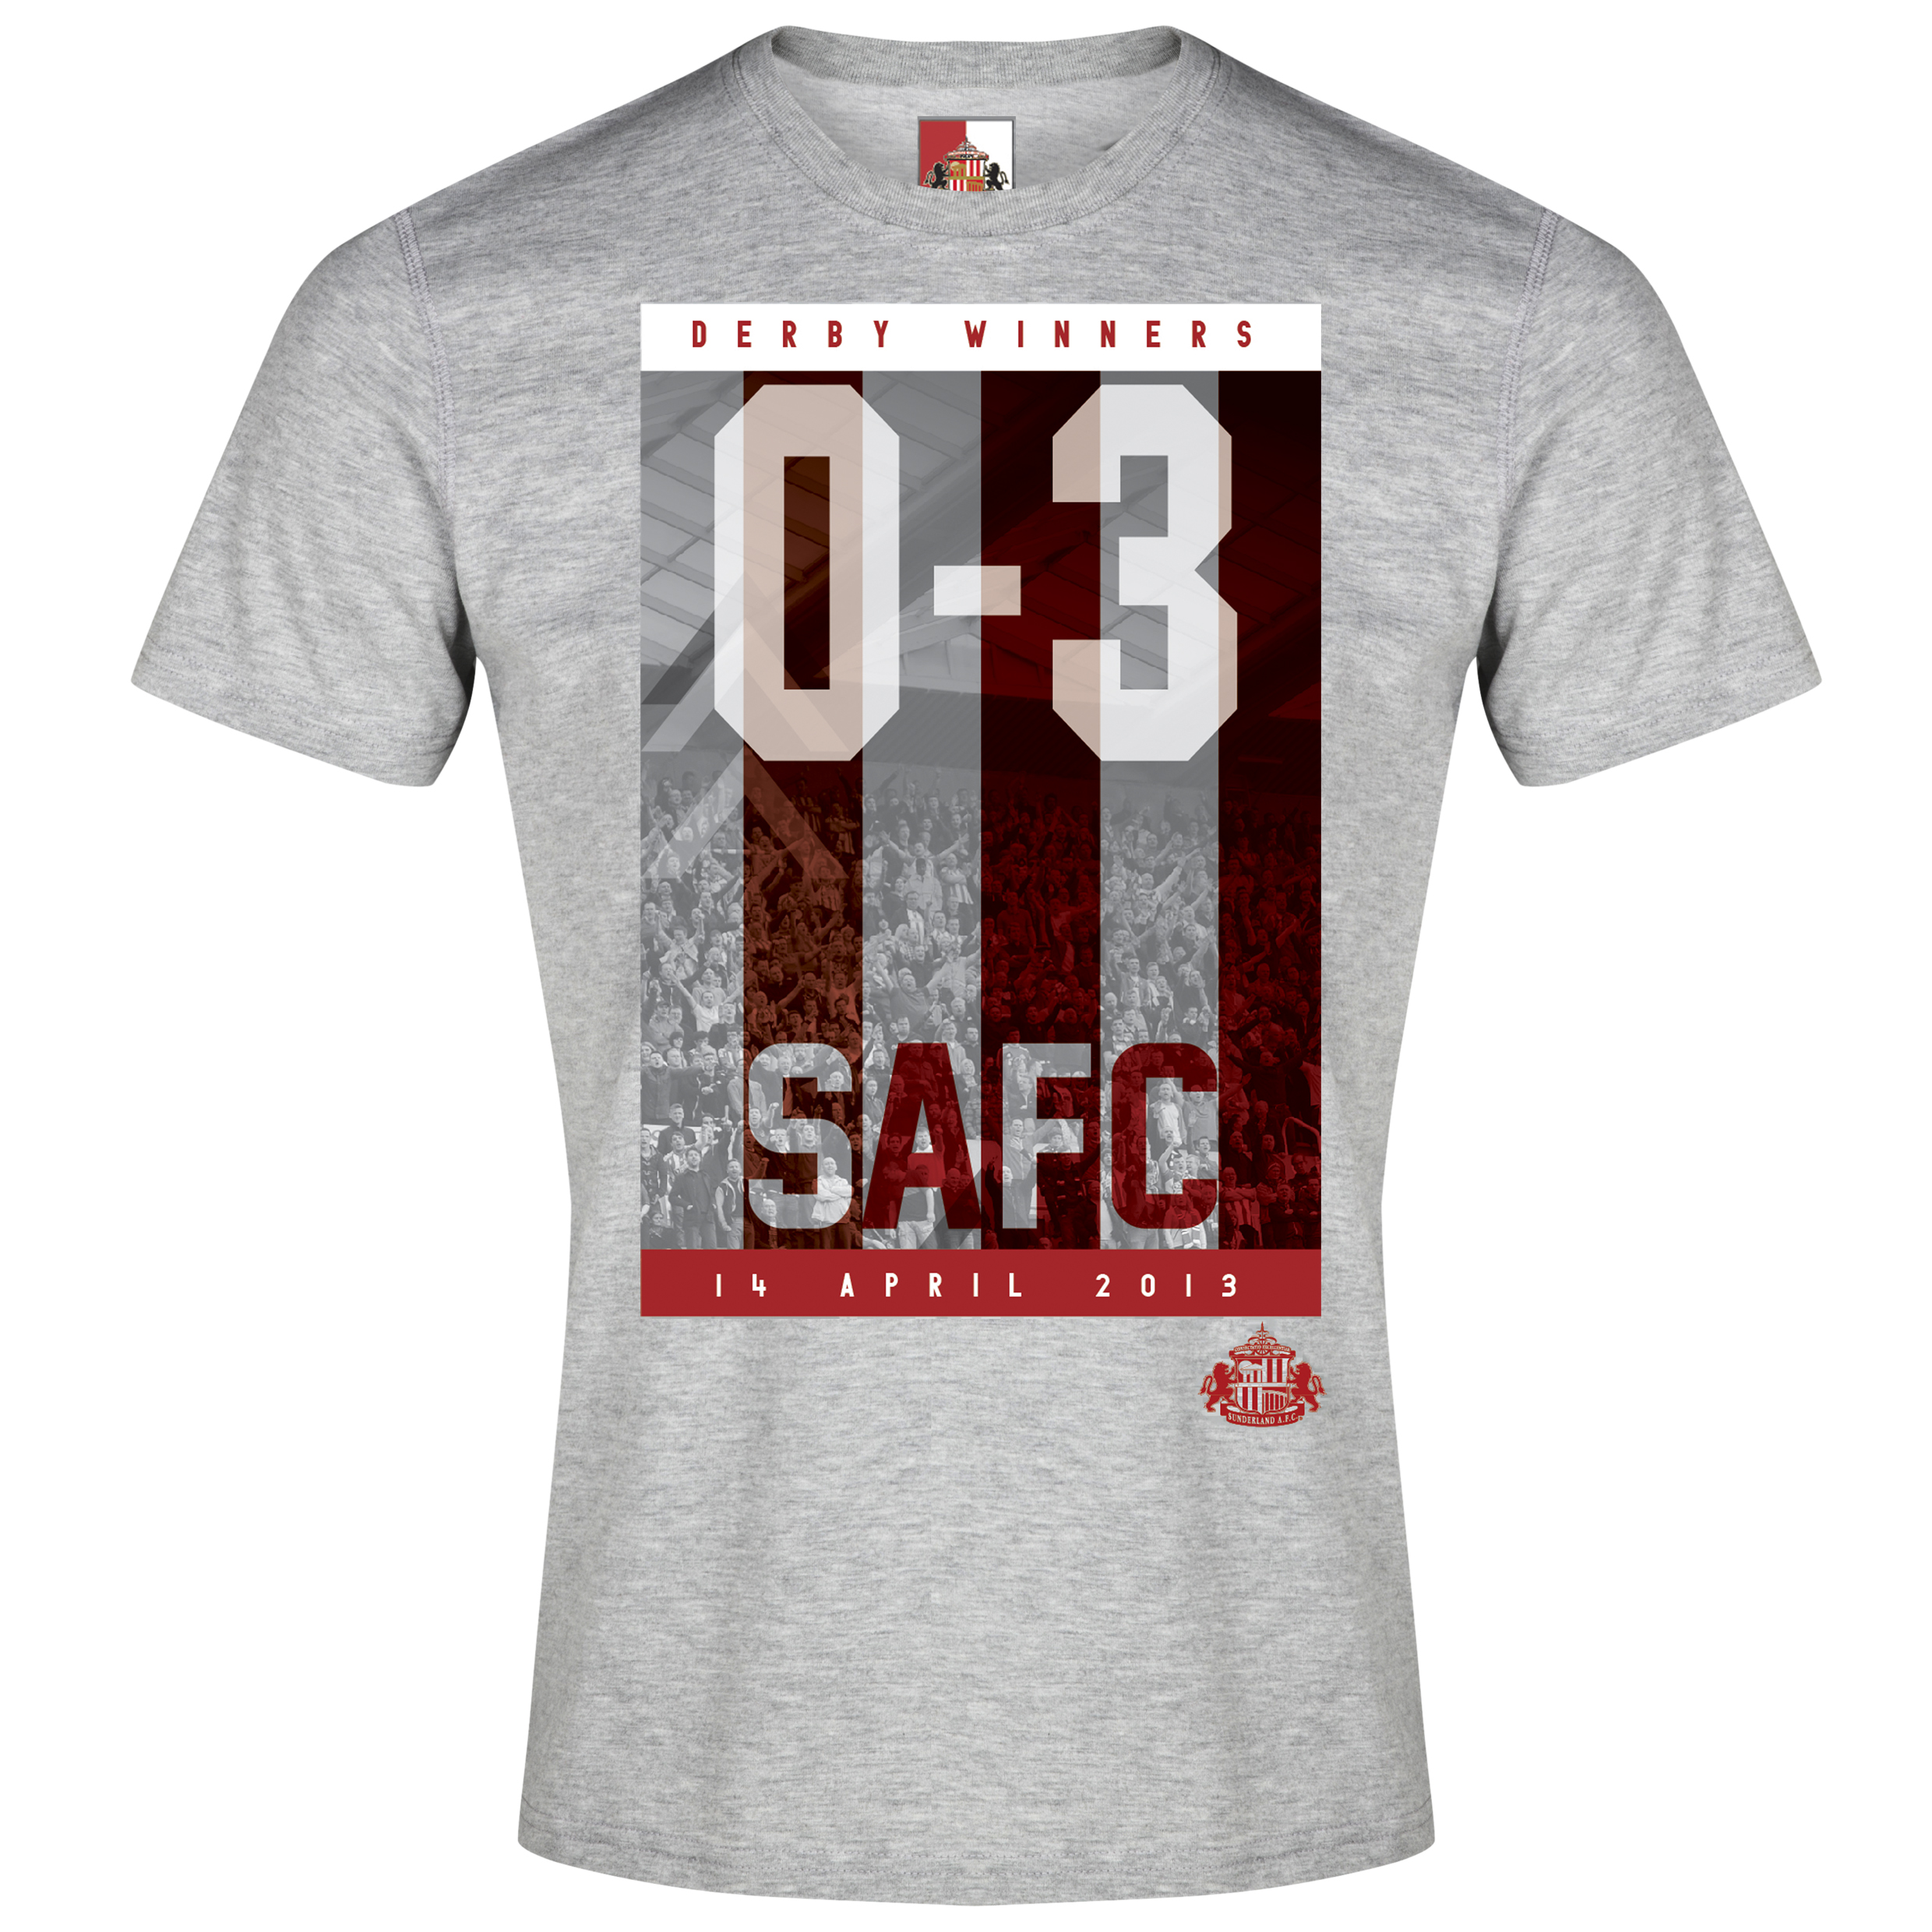 Sunderland 2for20 Derby Win T-Shirt - Mens Grey